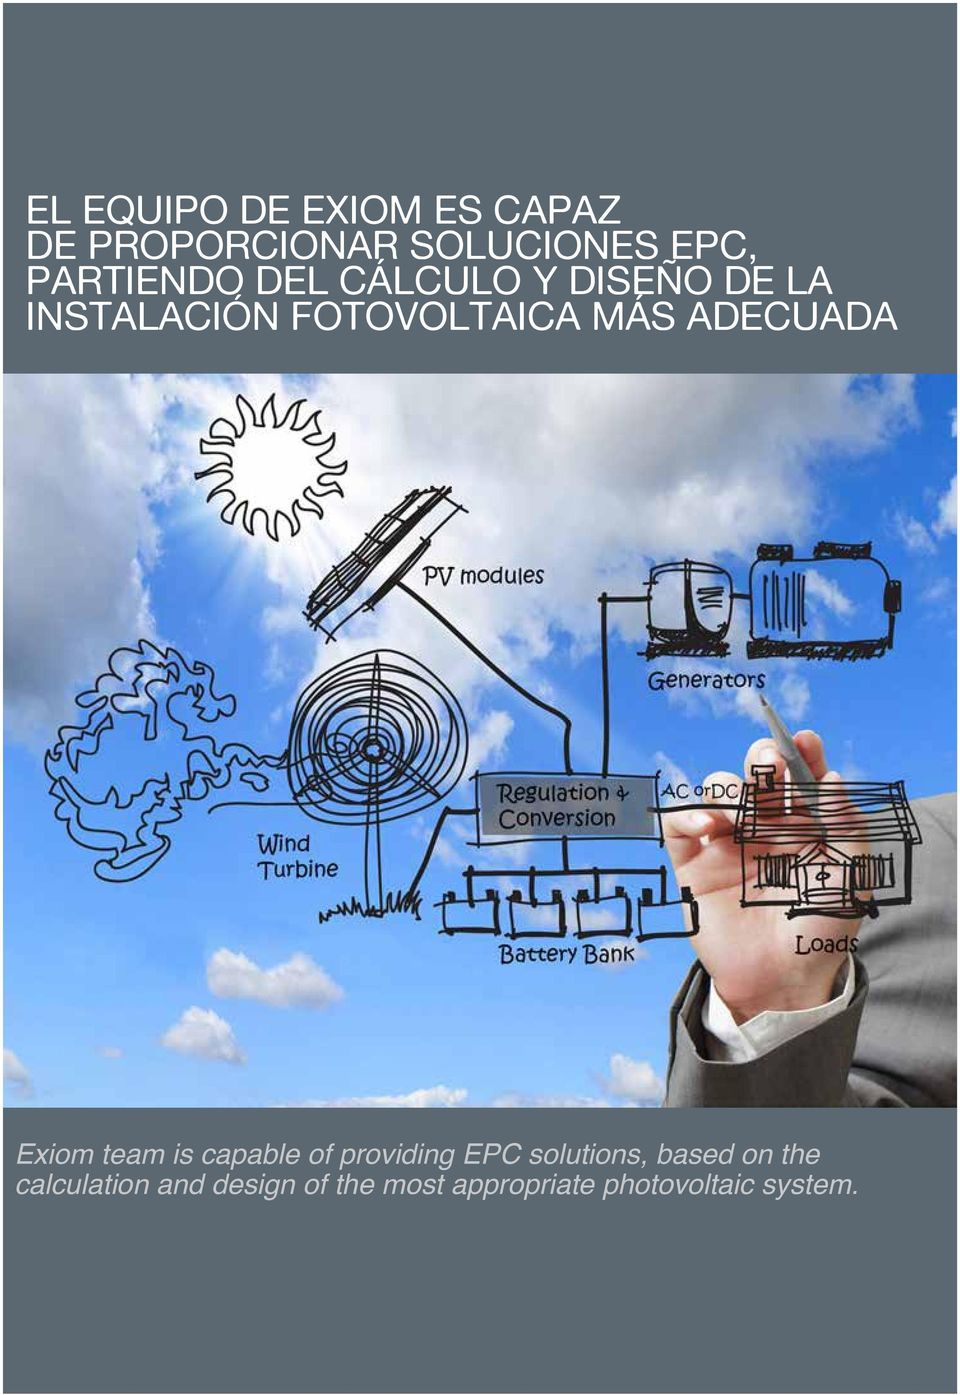 adecuada Exiom team is capable of providing EPC solutions, based